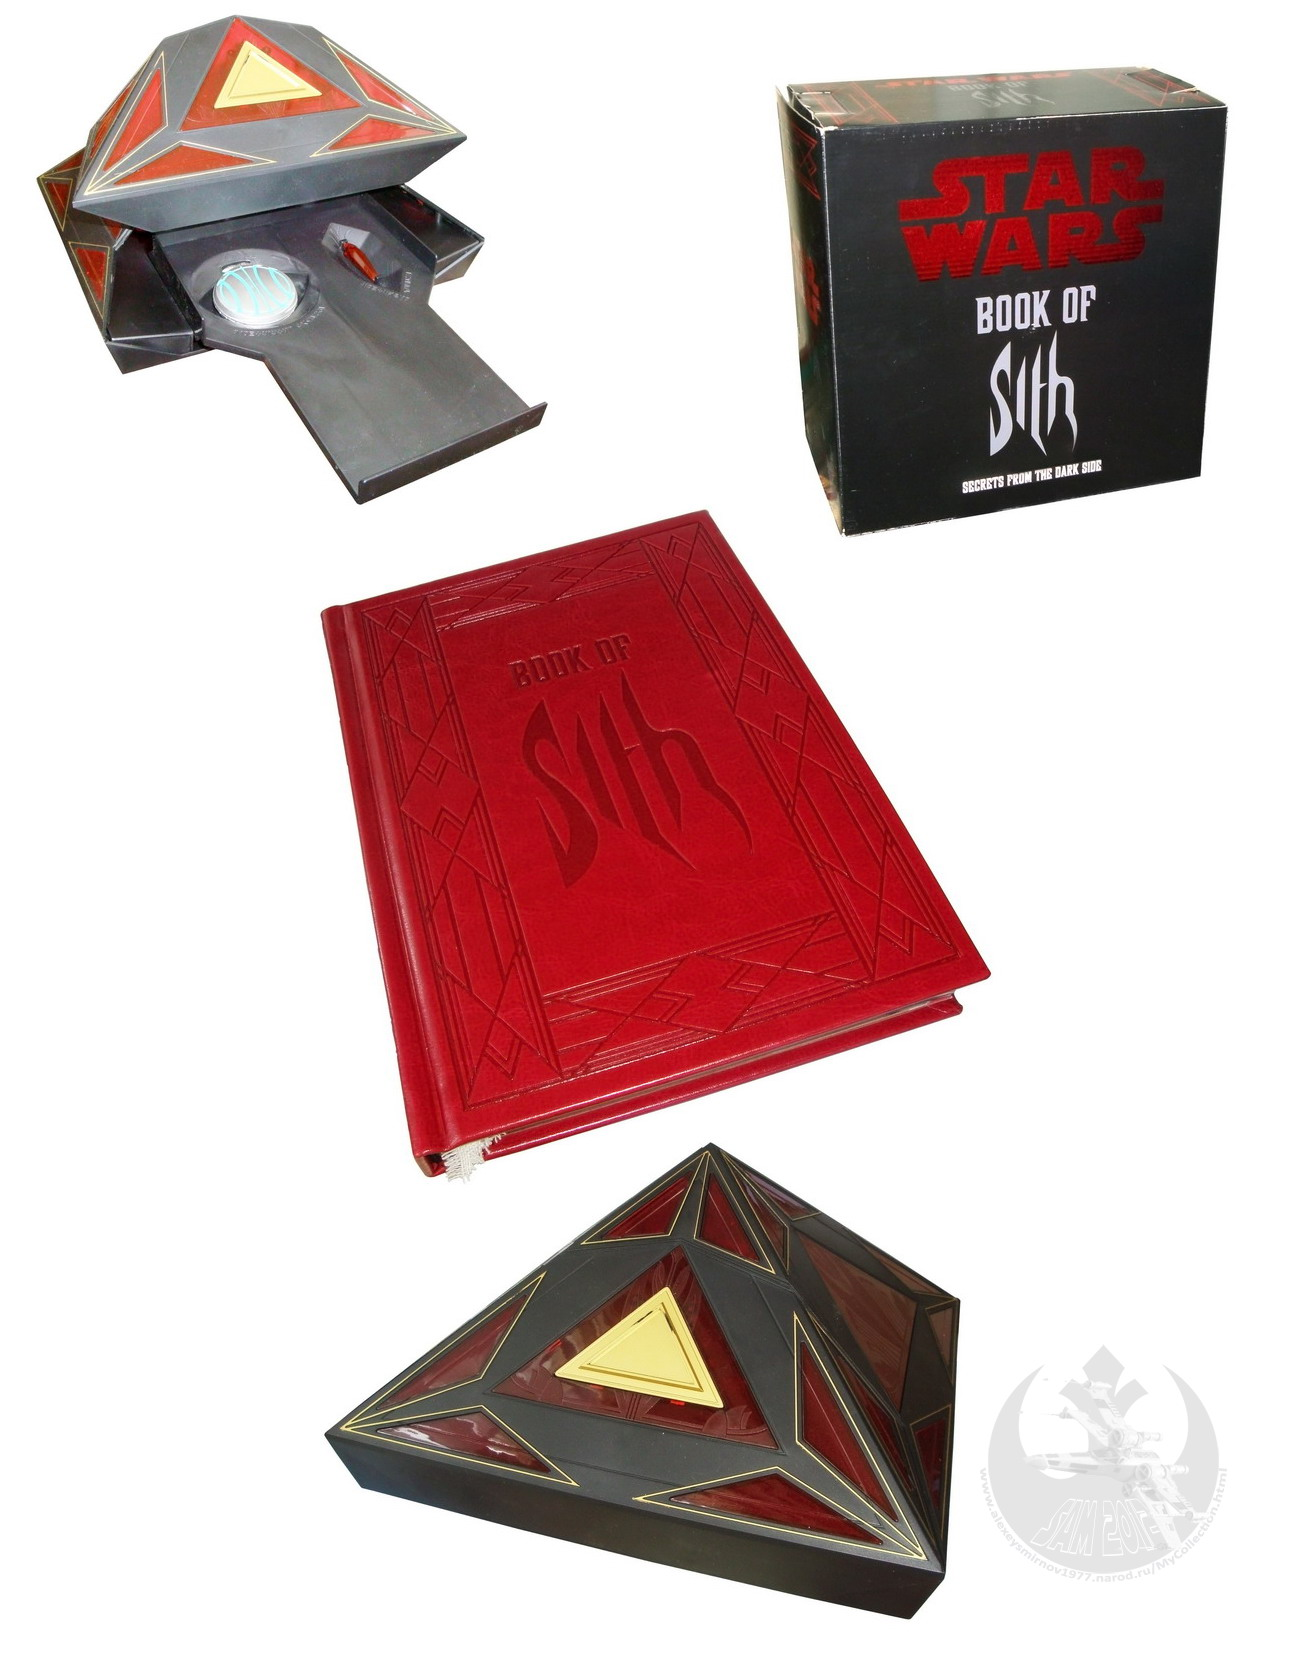 book of sith secrets from the dark side pdf